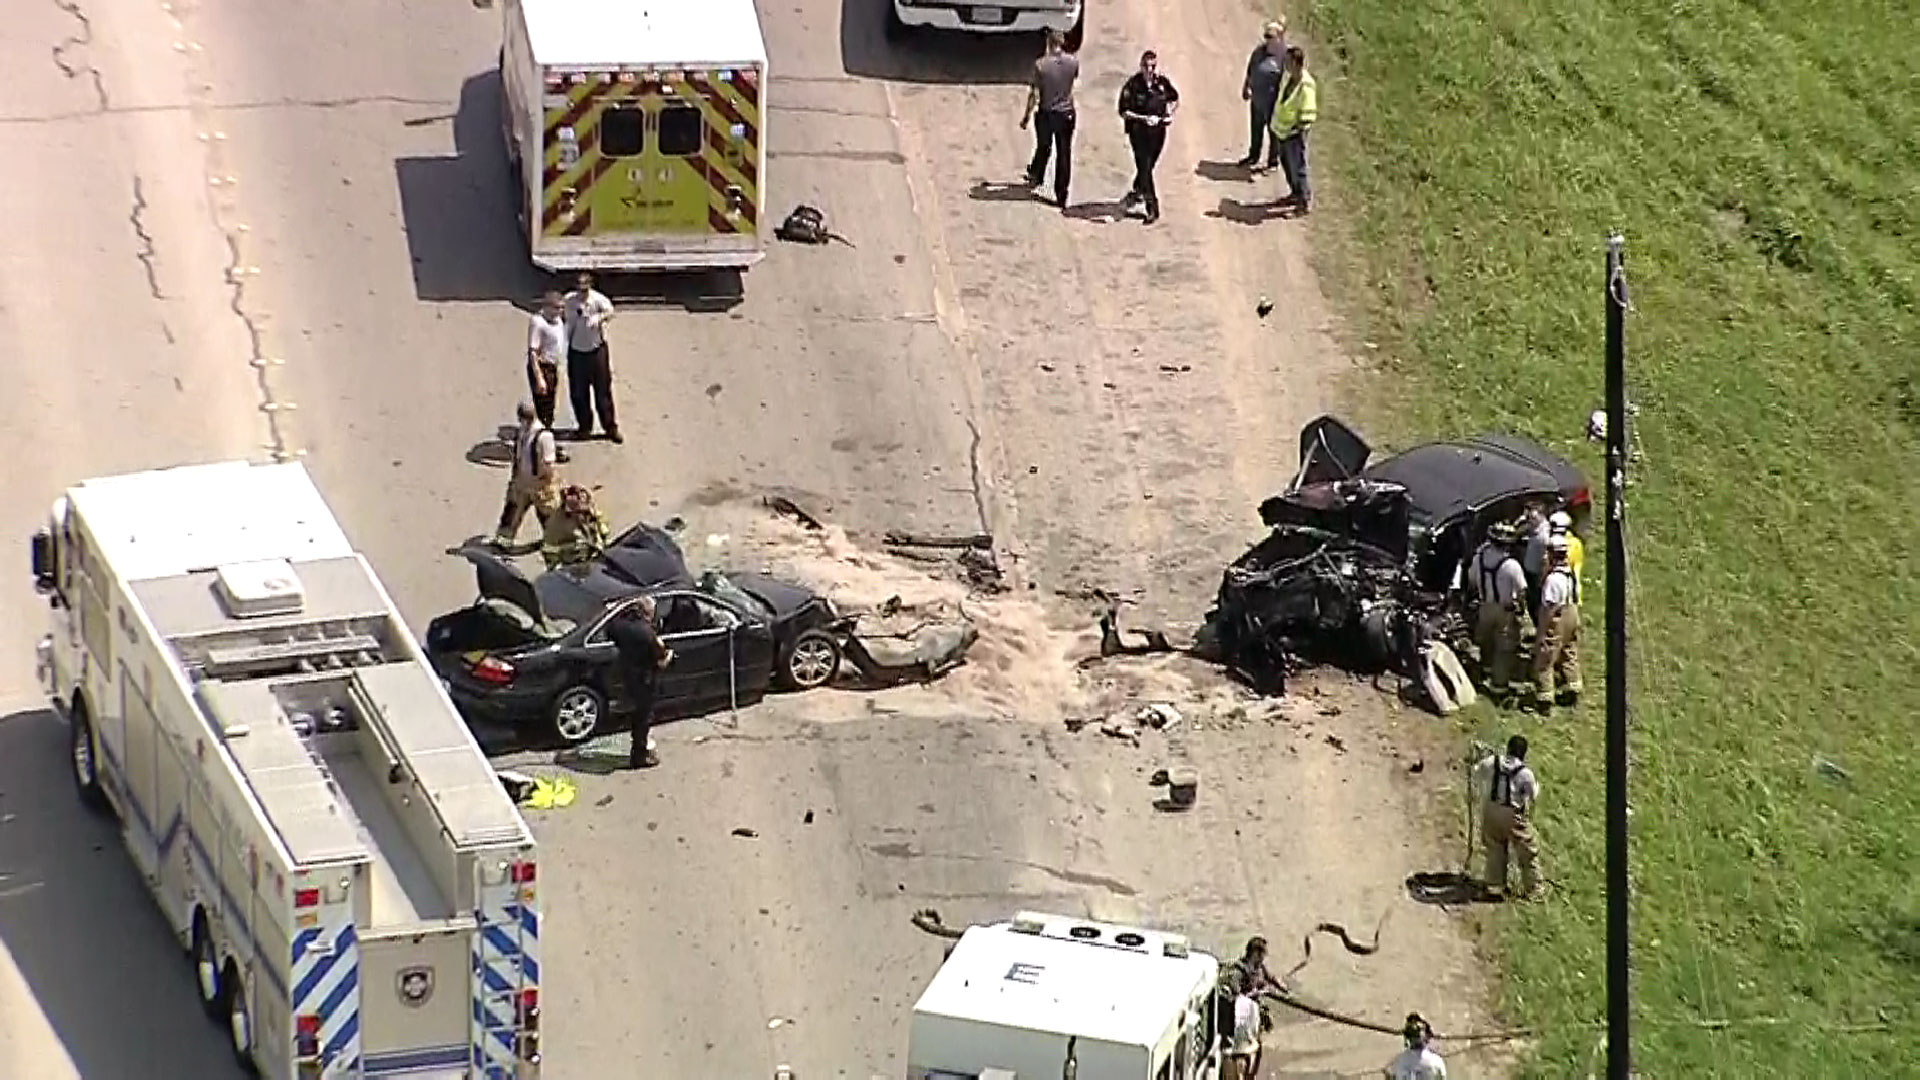 northside drive closed due to fatal crash - dallas news - newslocker